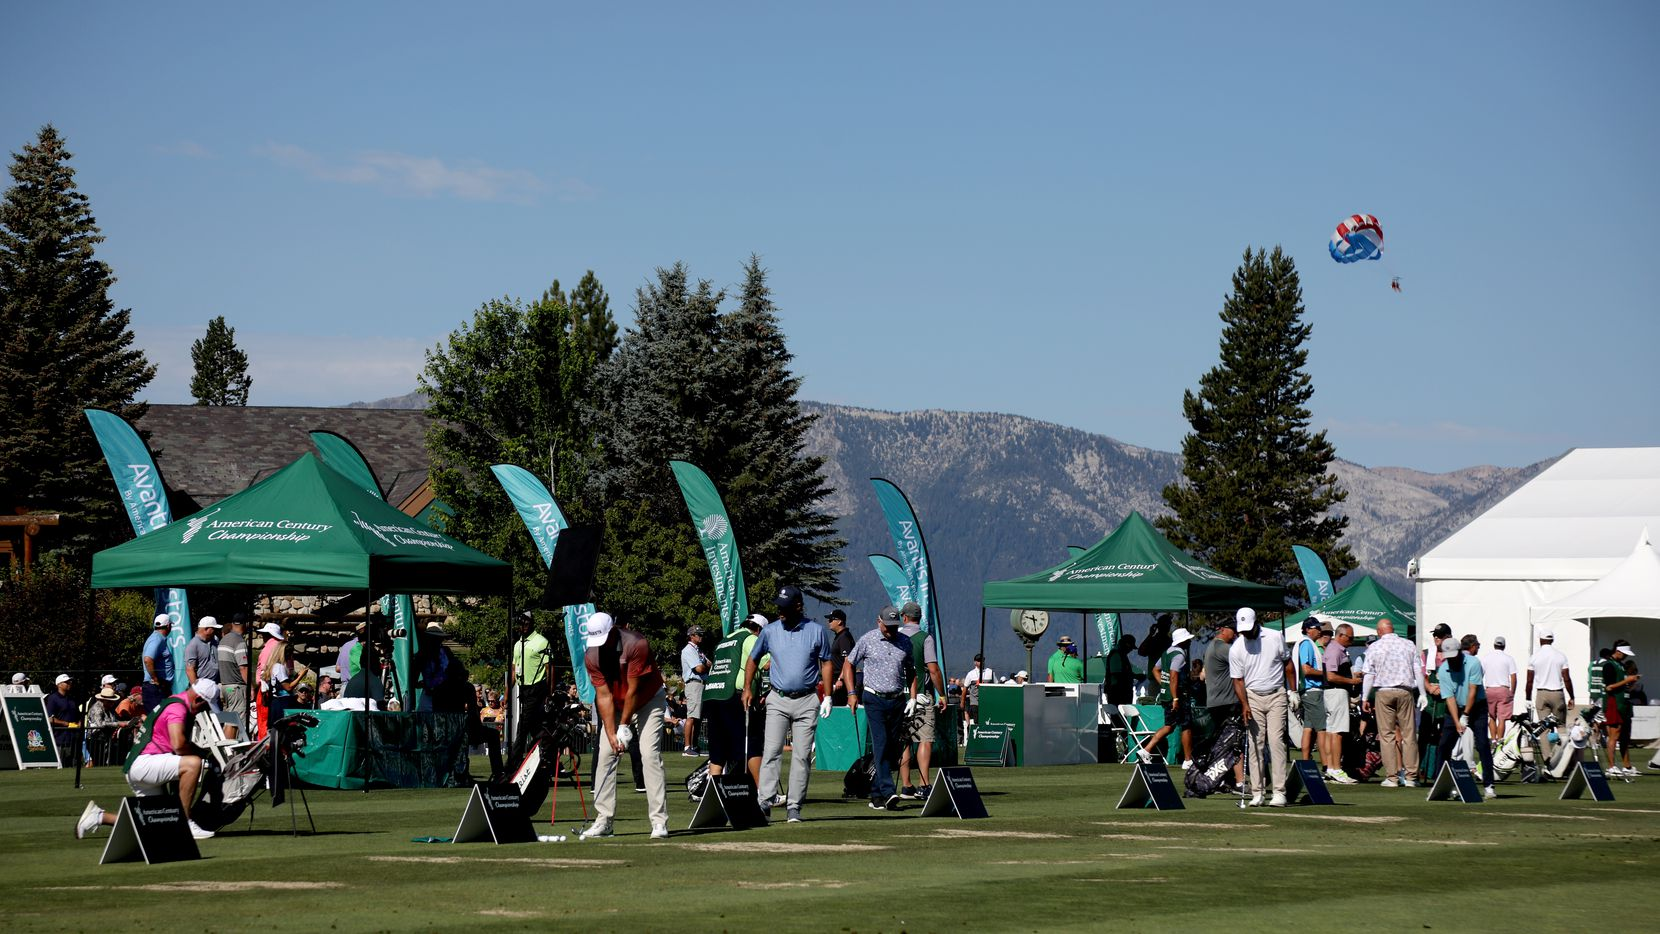 Golfers practice on the driving range during round one of the American Century Championship at Edgewood Tahoe South golf course on July 9, 2020 in South Lake Tahoe, Nevada.